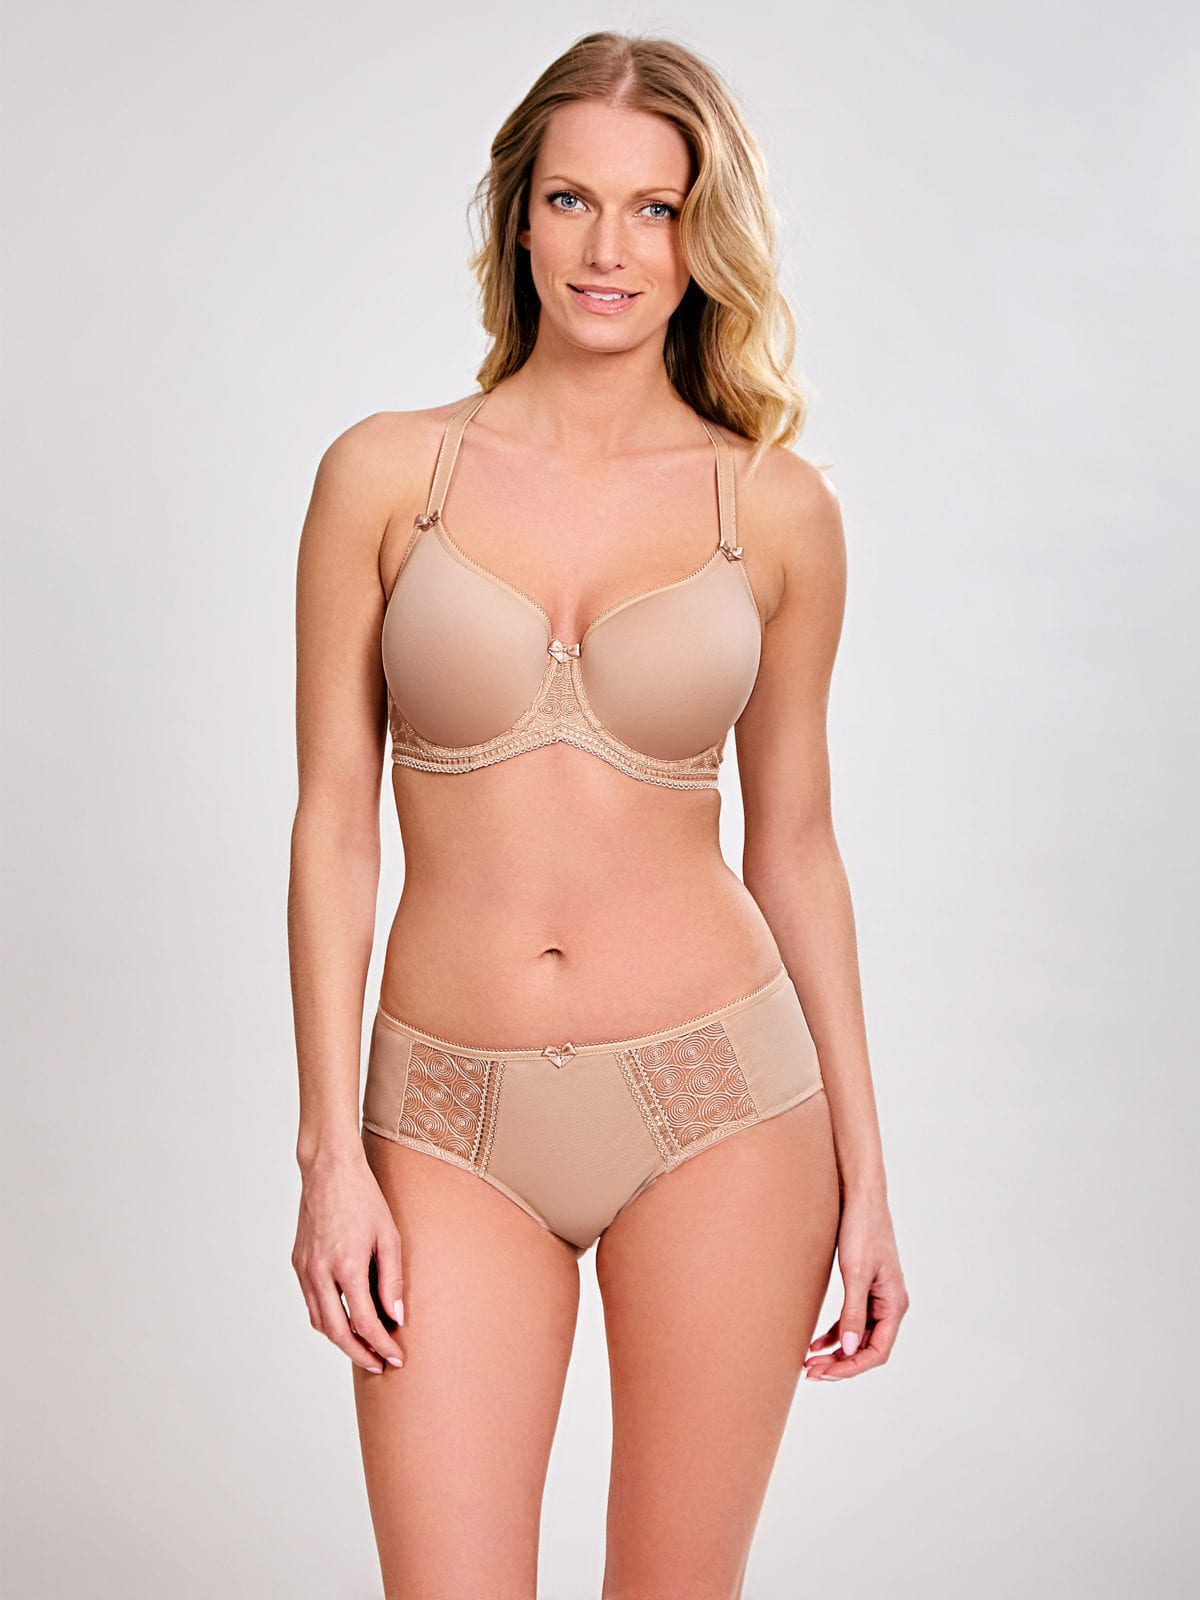 Базовое белье 7961_076_Cari Spacer Bra Champagne Front Trade 5